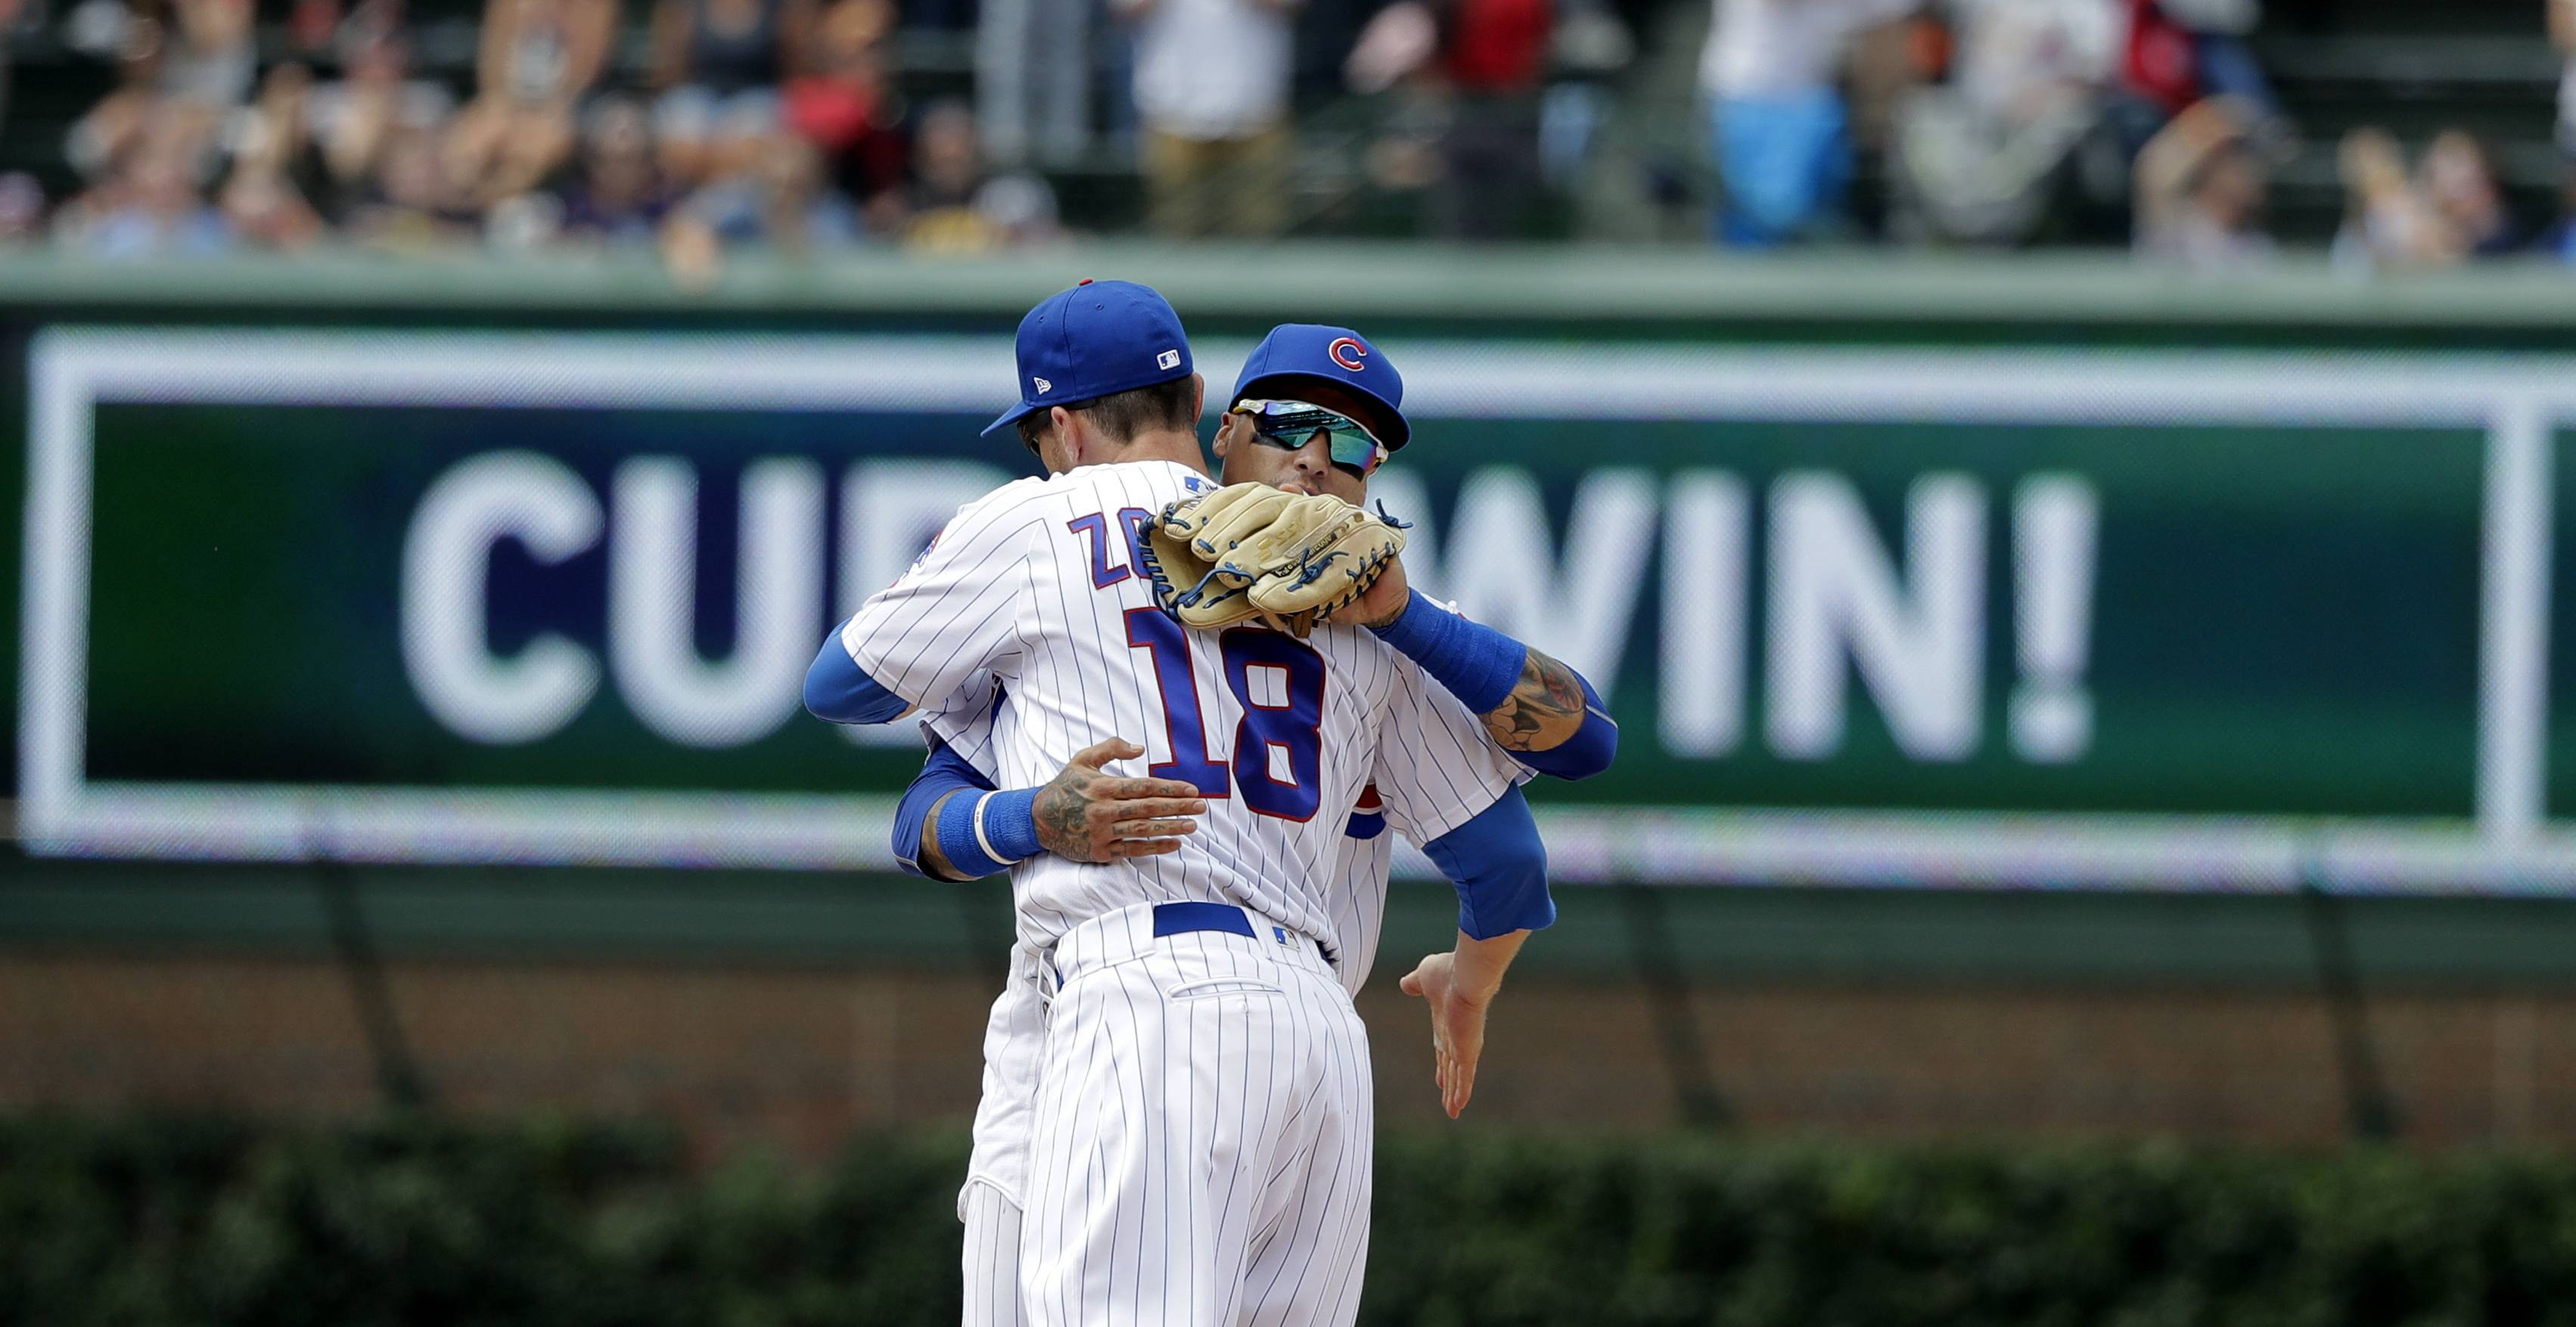 Chicago Cubs' Ben Zobrist (18) and Javier Baez celebrate their win over the St. Louis Cardinals after a baseball game Saturday, July 21, 2018, in Chicago.